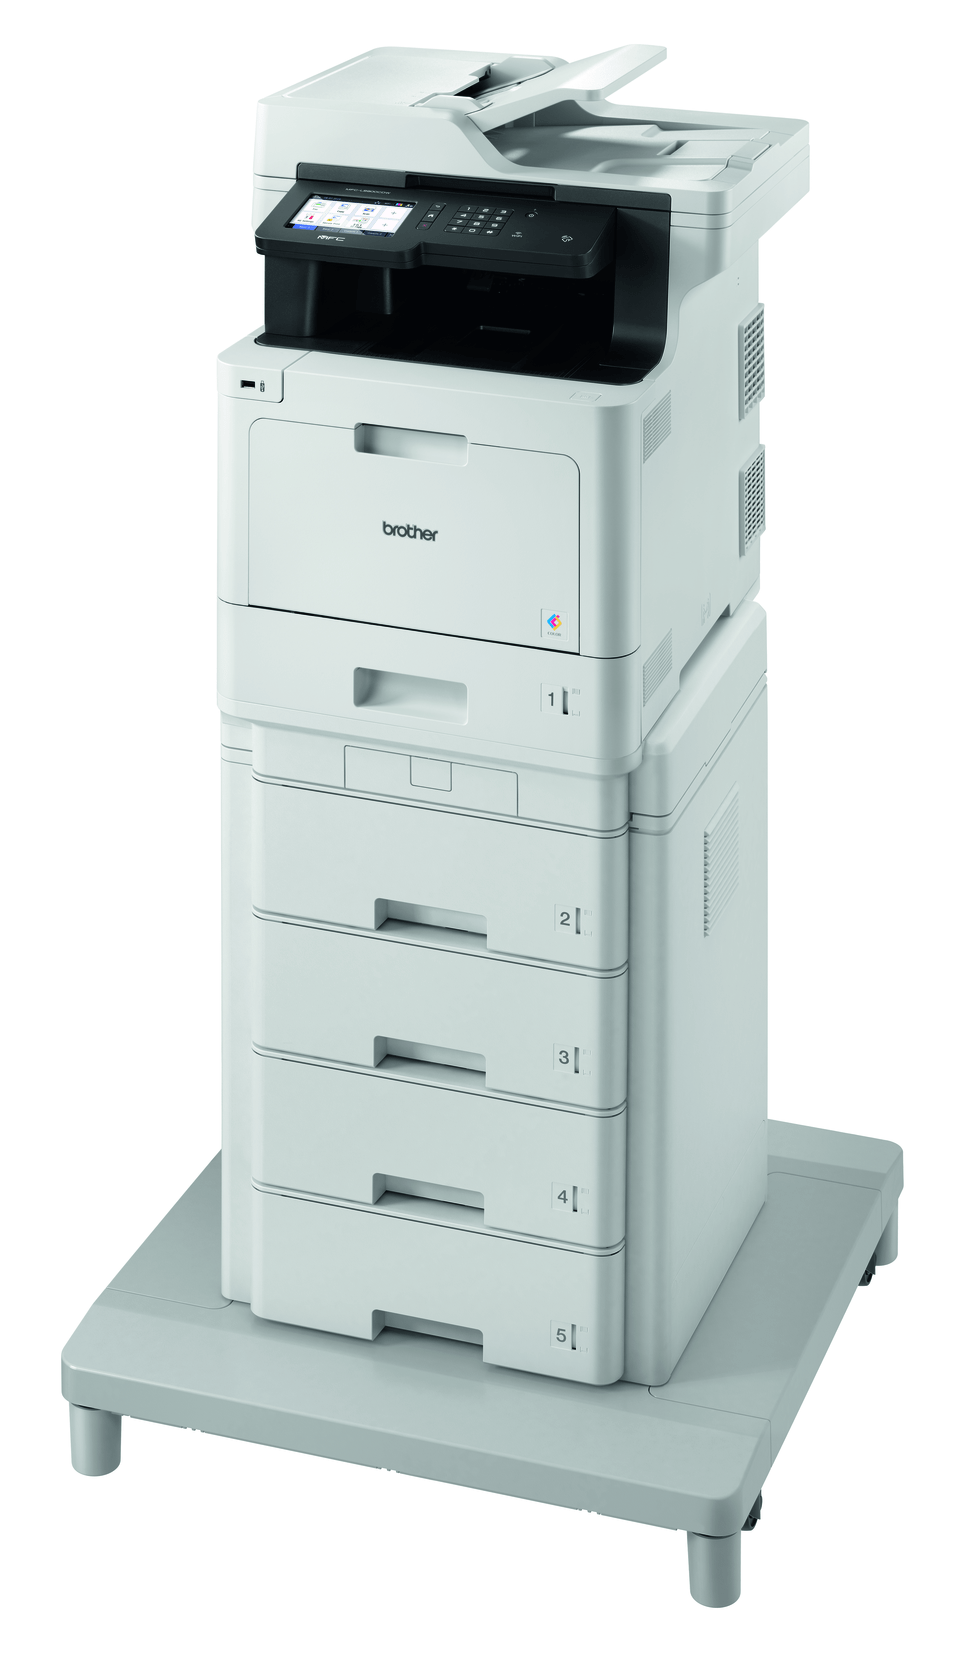 Brother MFC-L8900CDWMT Professional Colour, Duplex, Wireless Laser All-in-one Printer + Tower Tray + Tower Tray Connector 2